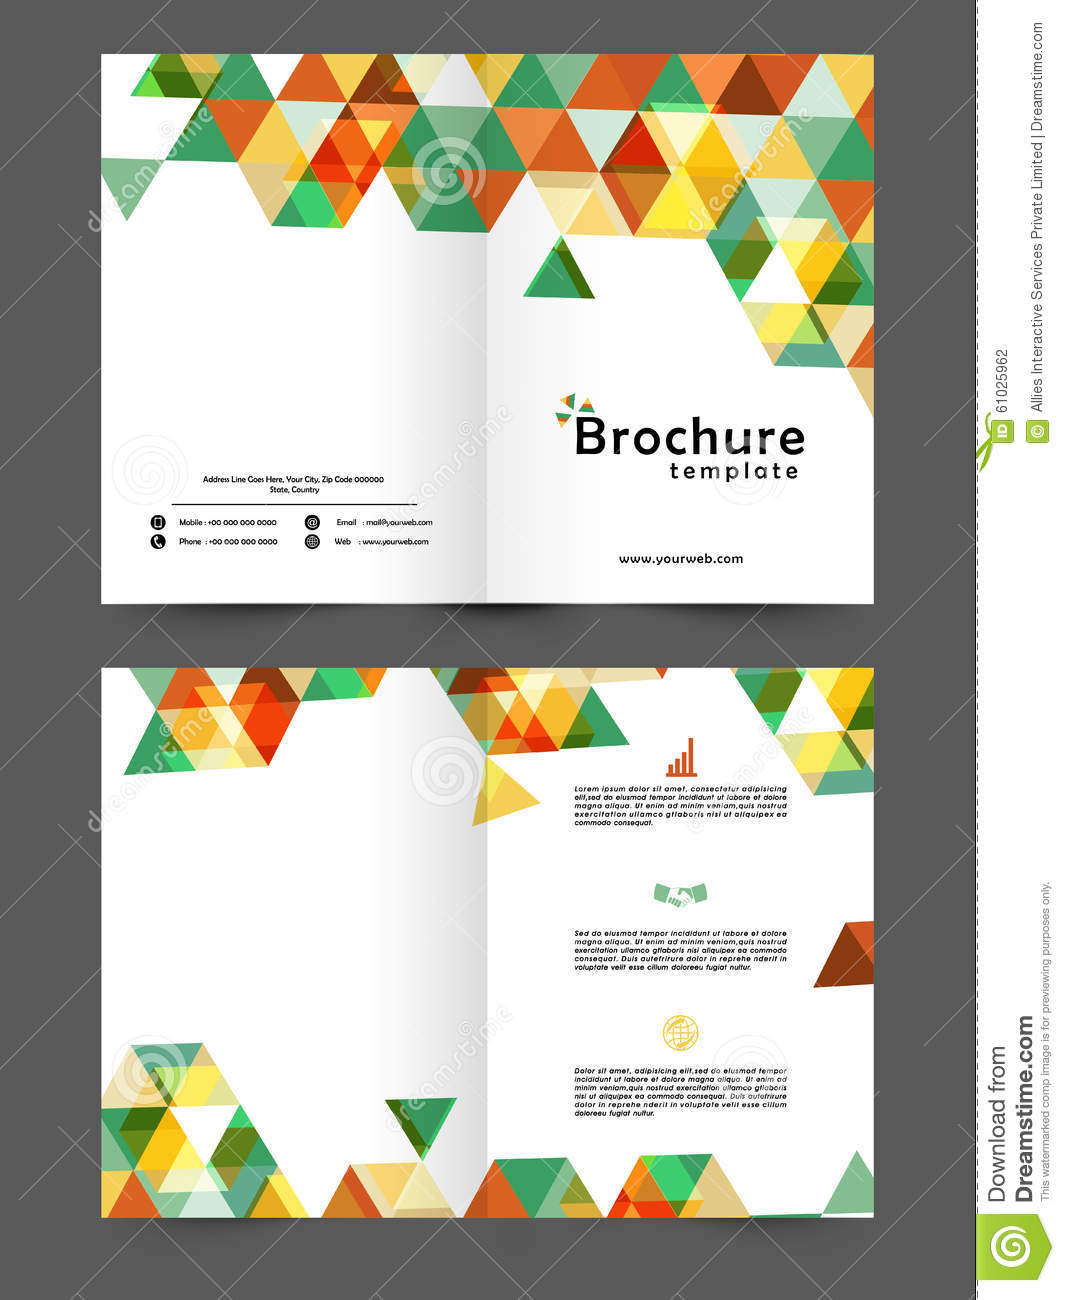 two page brochure template two page business brochure or template stock illustration